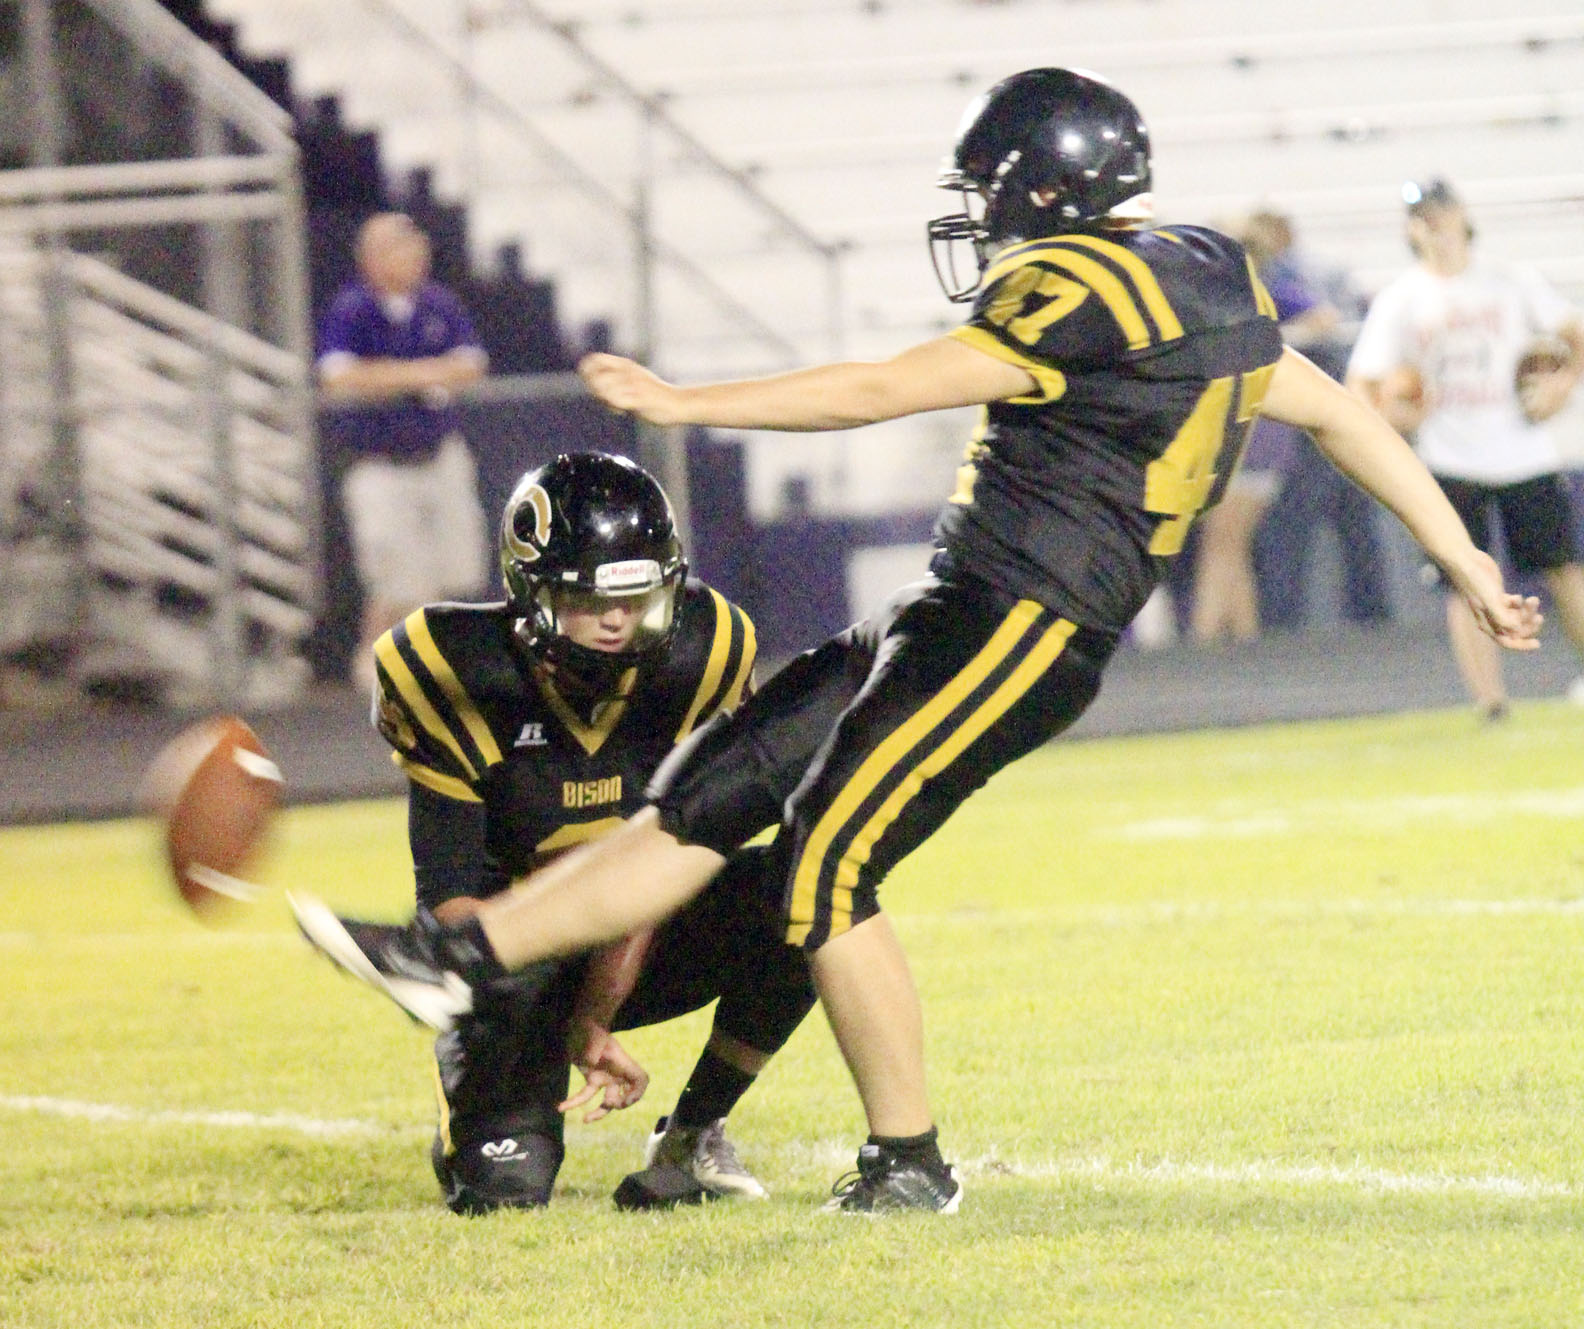 Lonoke County Sports Report: Bison coach says team must work on tackling following scrimmage